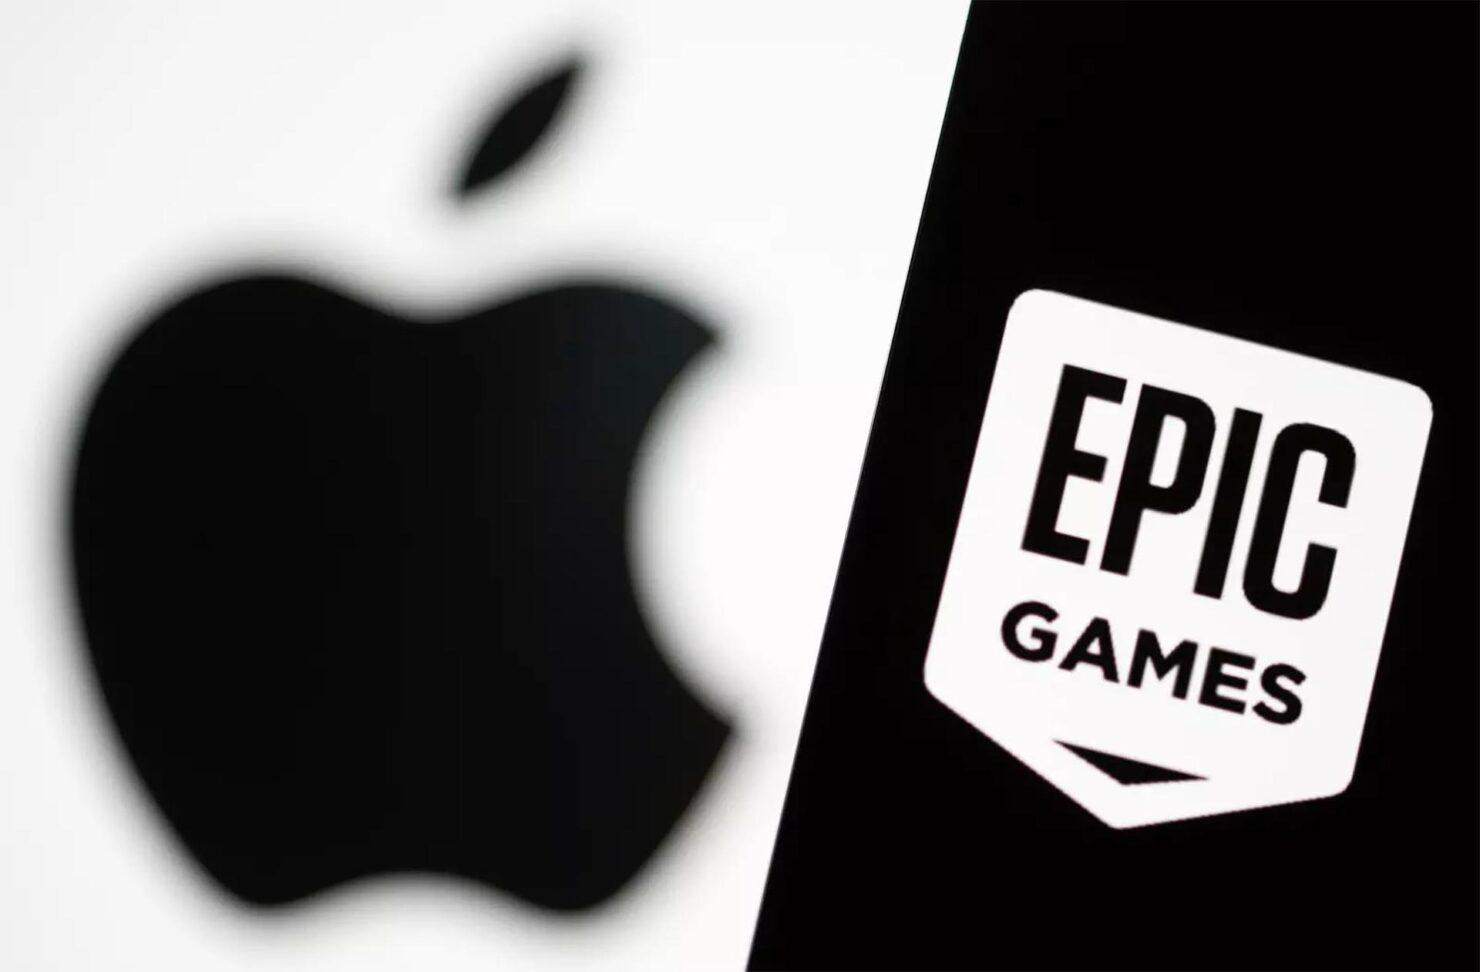 Epic vs. Apple Ruling Reveals Latter Must Allow App Store to Direct Users to Third-Party Payment Options